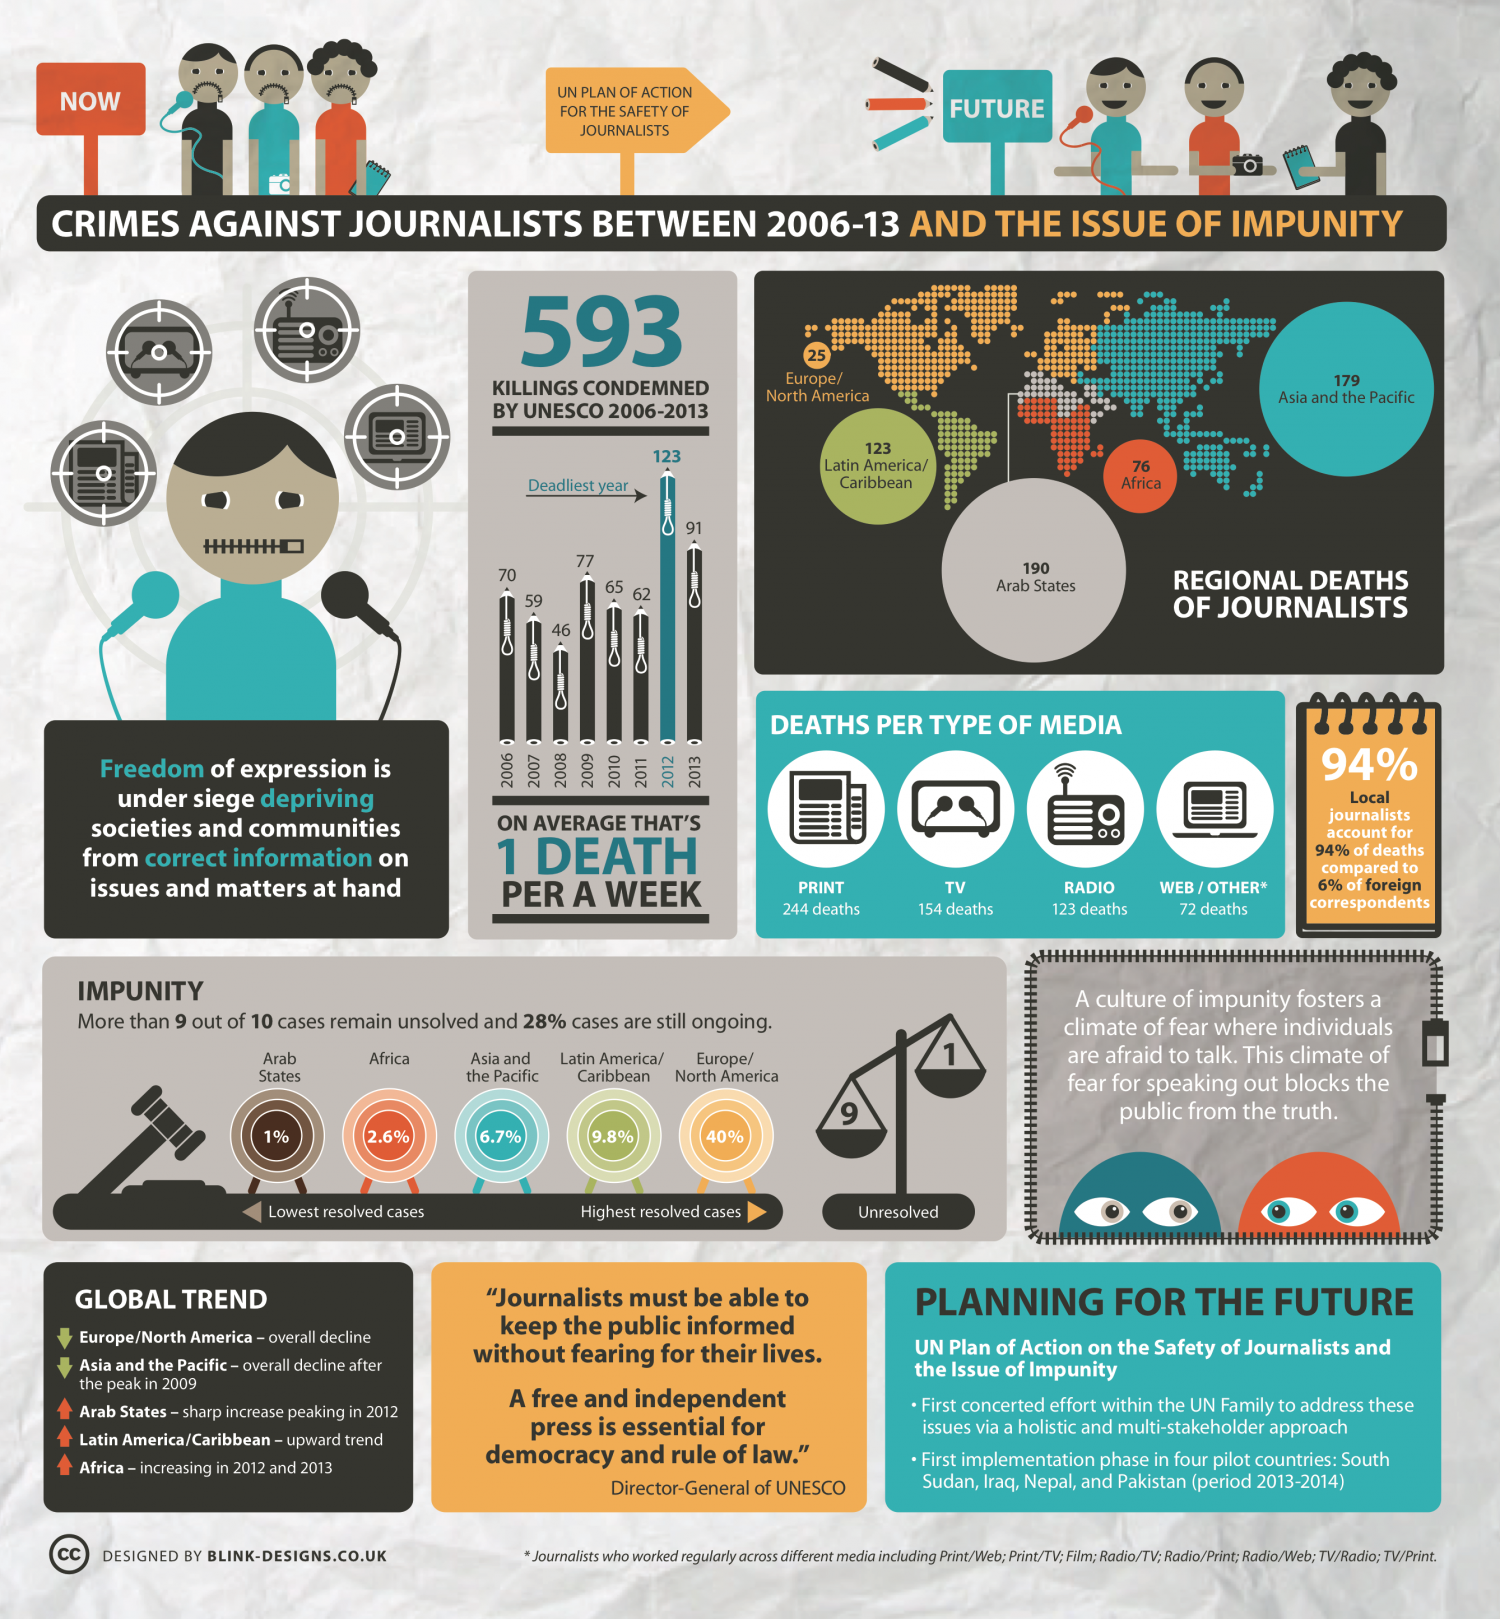 Crimes Against Journalists Between 2006-13 and the Issue of Impunity Infographic